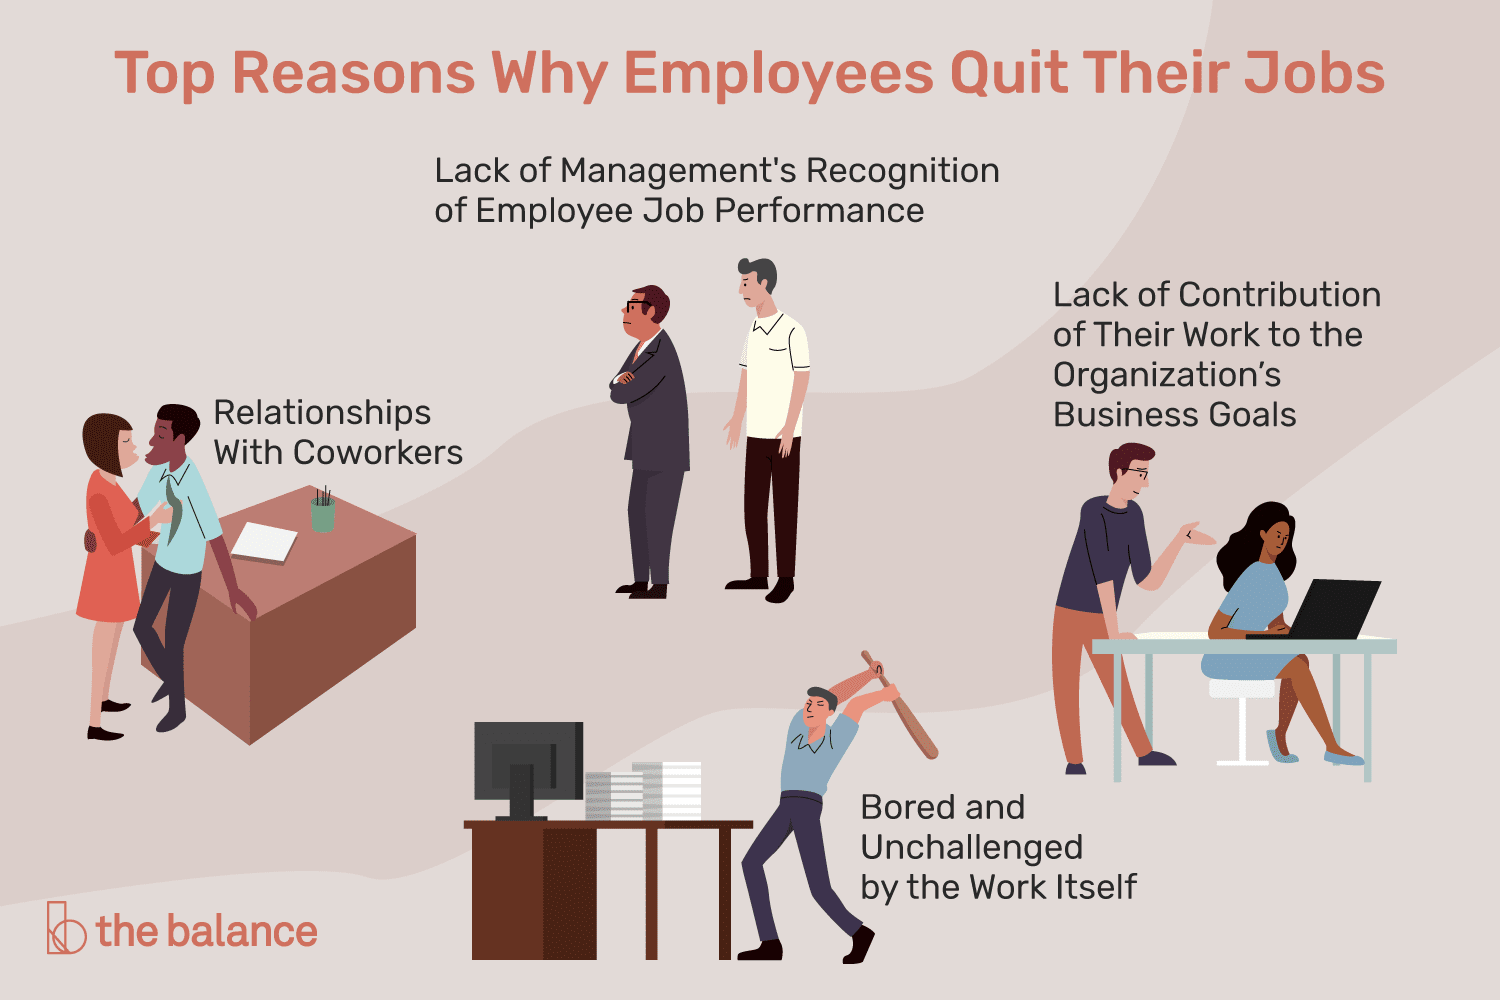 Top 10 Reasons Why Employees Quit